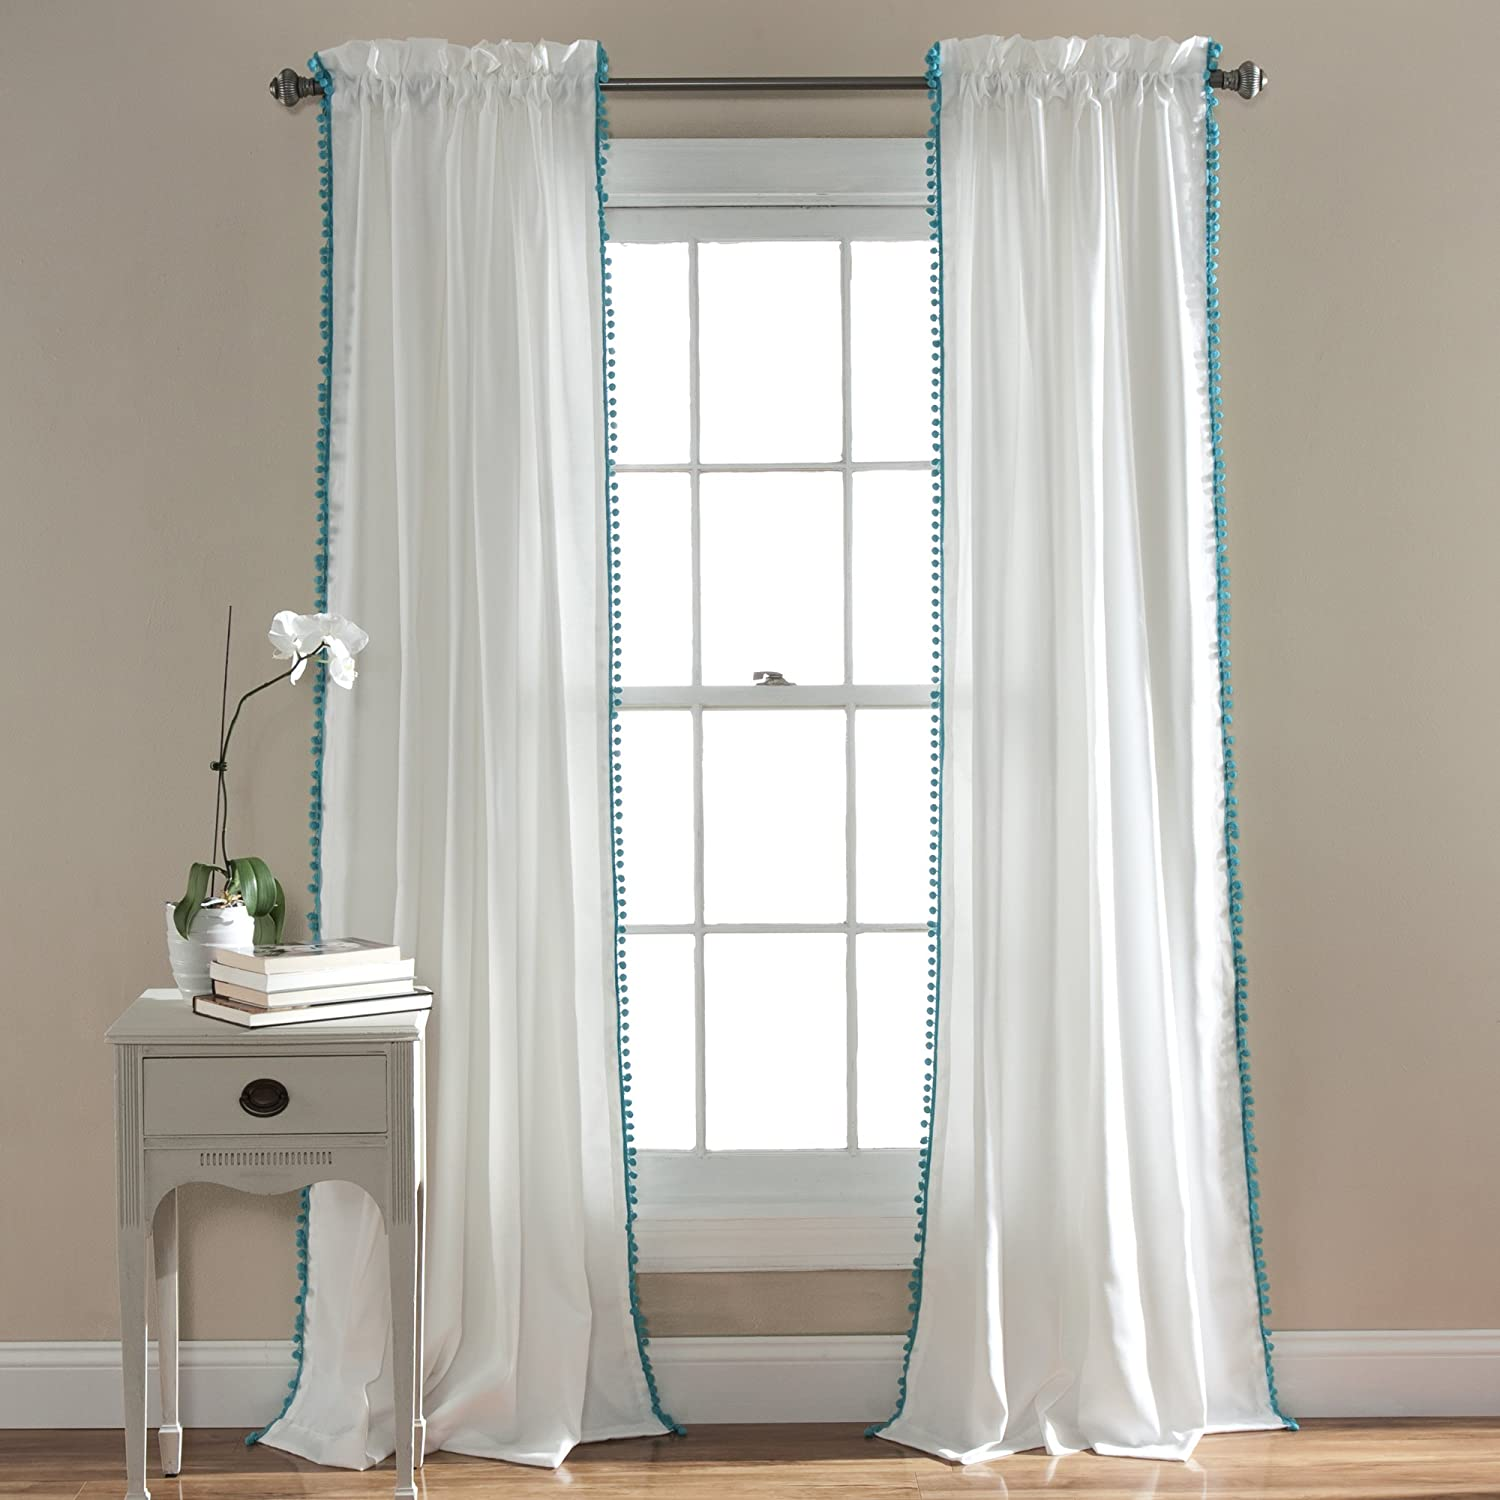 Back gt gallery for gt real open stage curtains - Amazon Com Lush Decor Pom Pom Window Curtain Panel 84 X 50 Aqua Home Kitchen